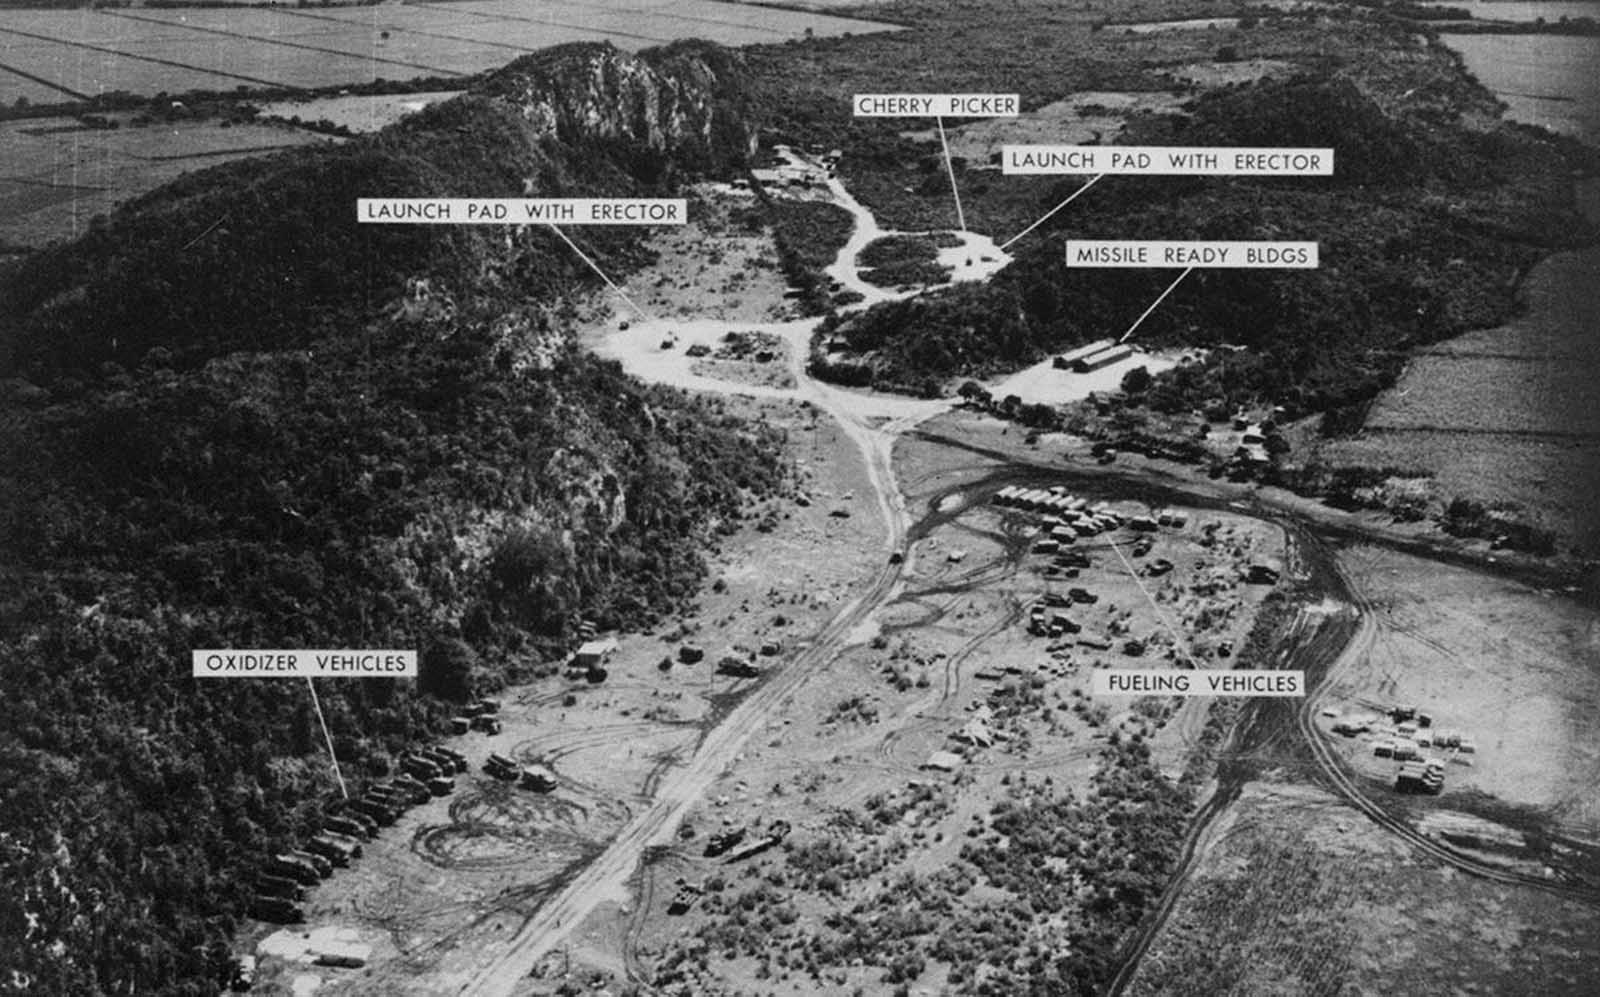 A low-level photograph taken November 1, 1962, of a Medium Range Ballistic Missile Site at Sagua La Grande, Cuba.